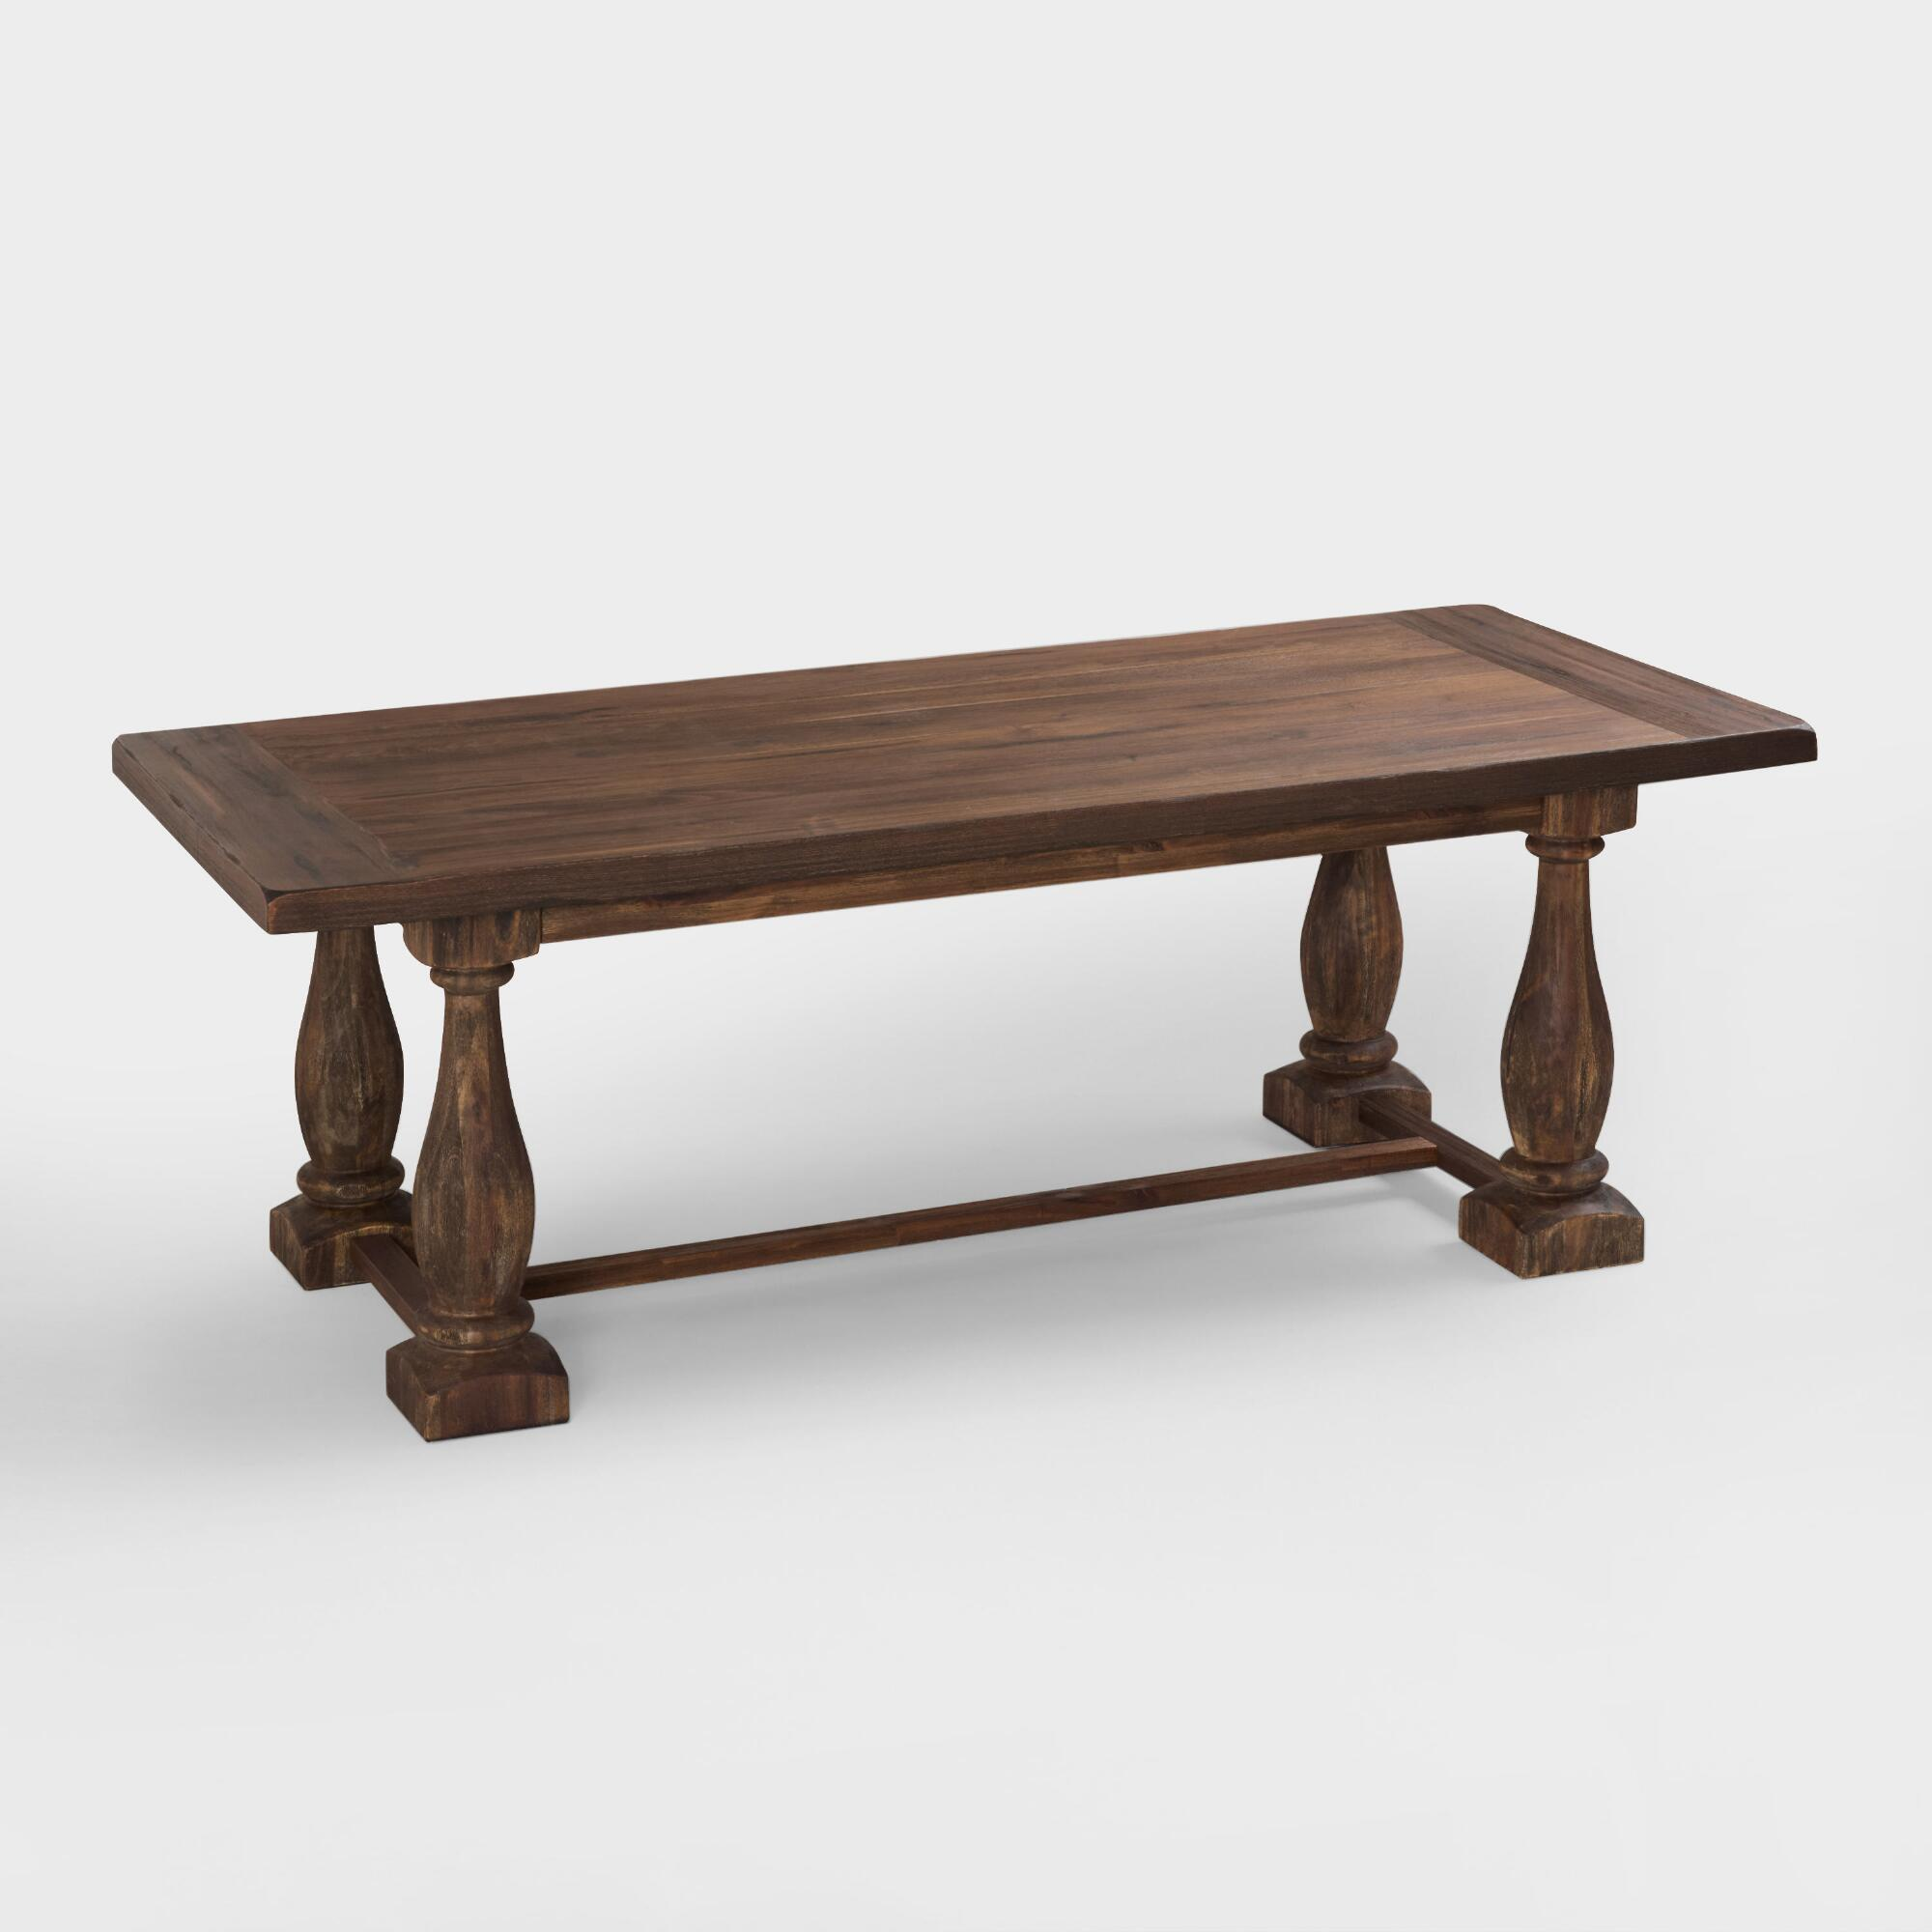 Unique wood dining table - Rustic Java Greyson Fixed Dining Table